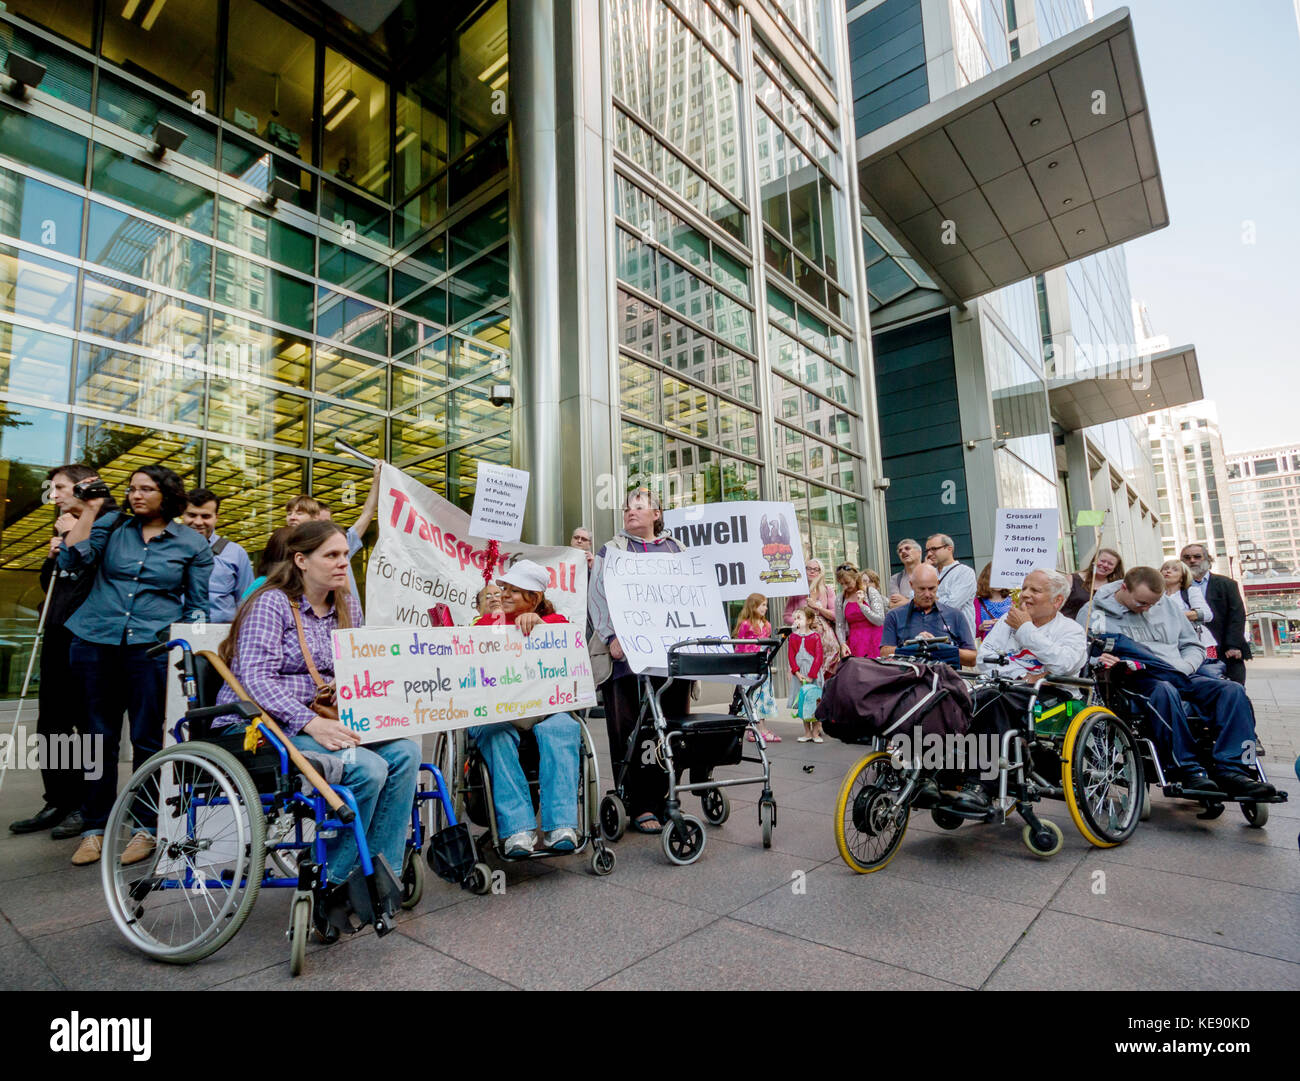 Disability campaigners protest outside the Crossrail head office building in Canary Wharf, London, UK. Stock Photo